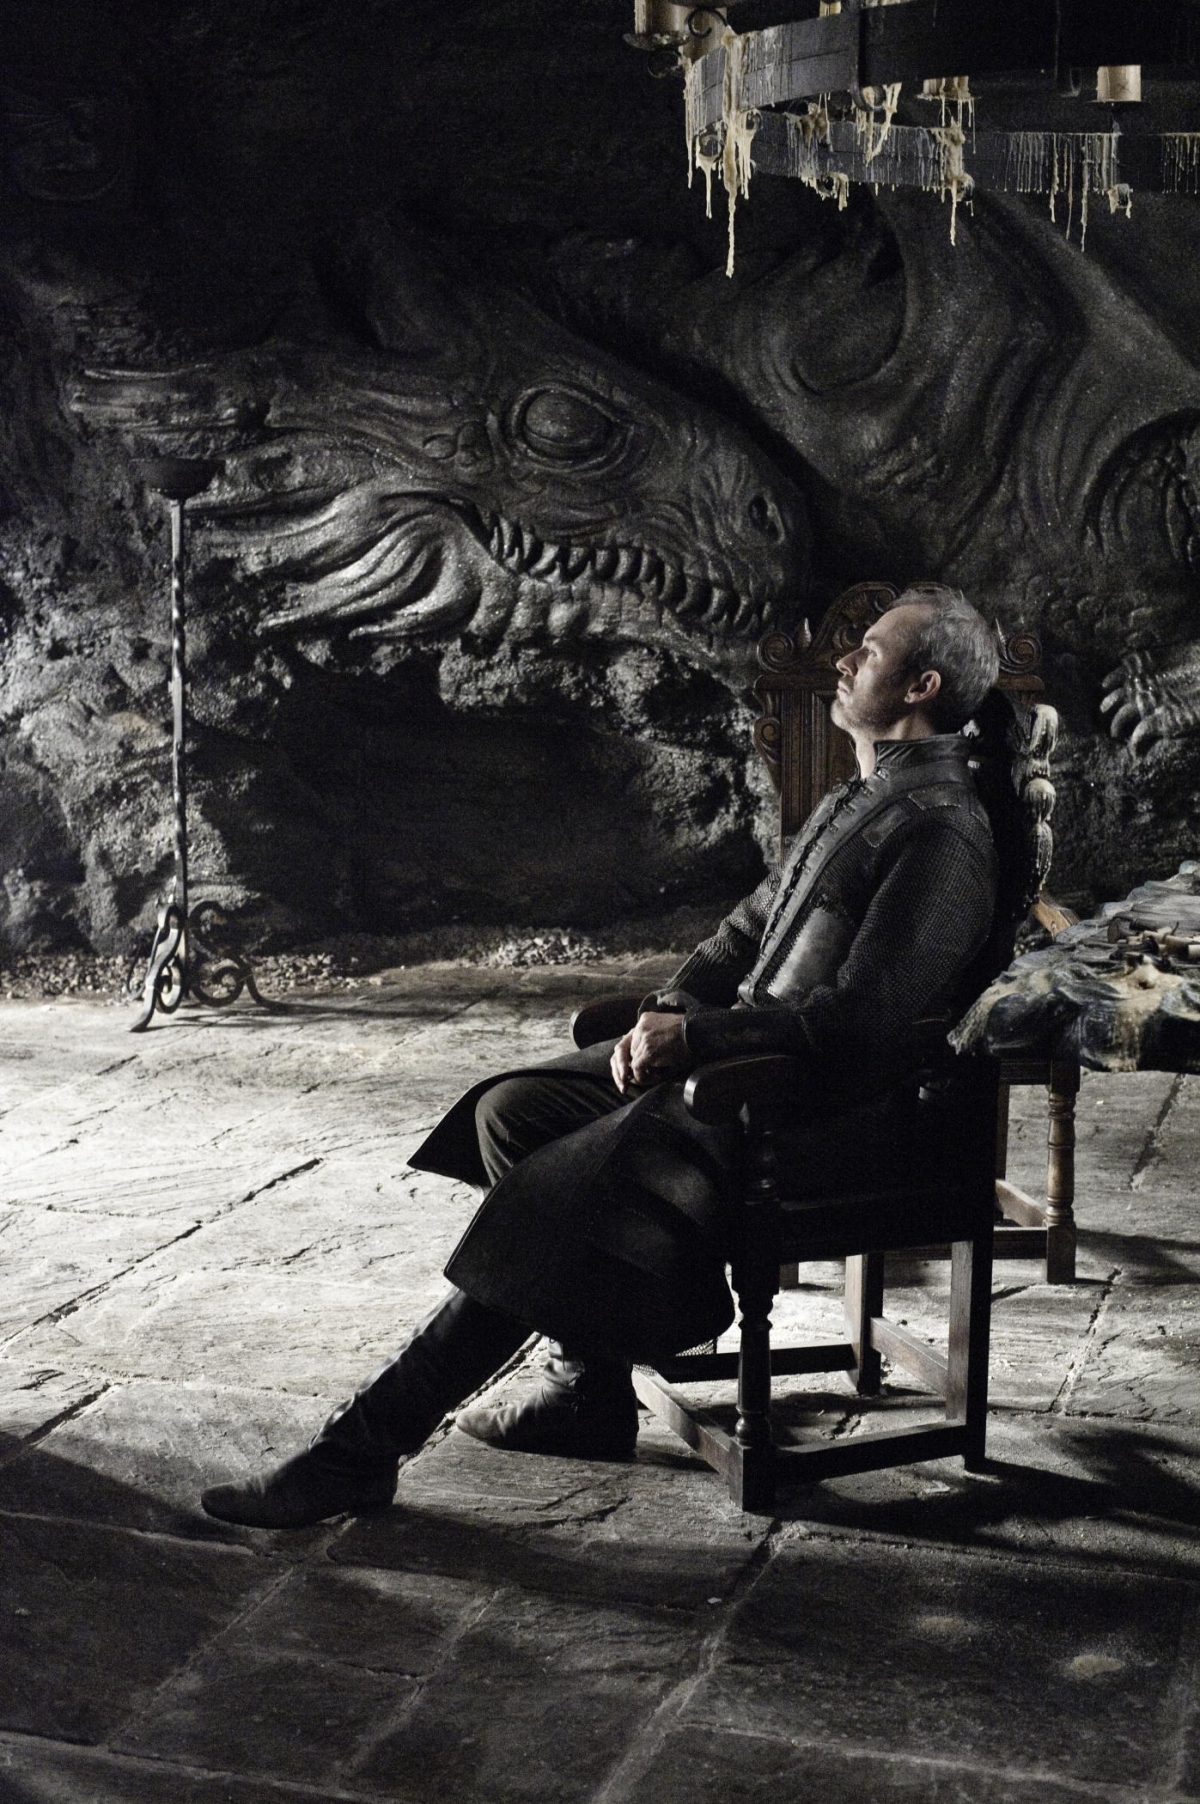 Game of Thrones Stannis Baratheon played by Stephen Dillane